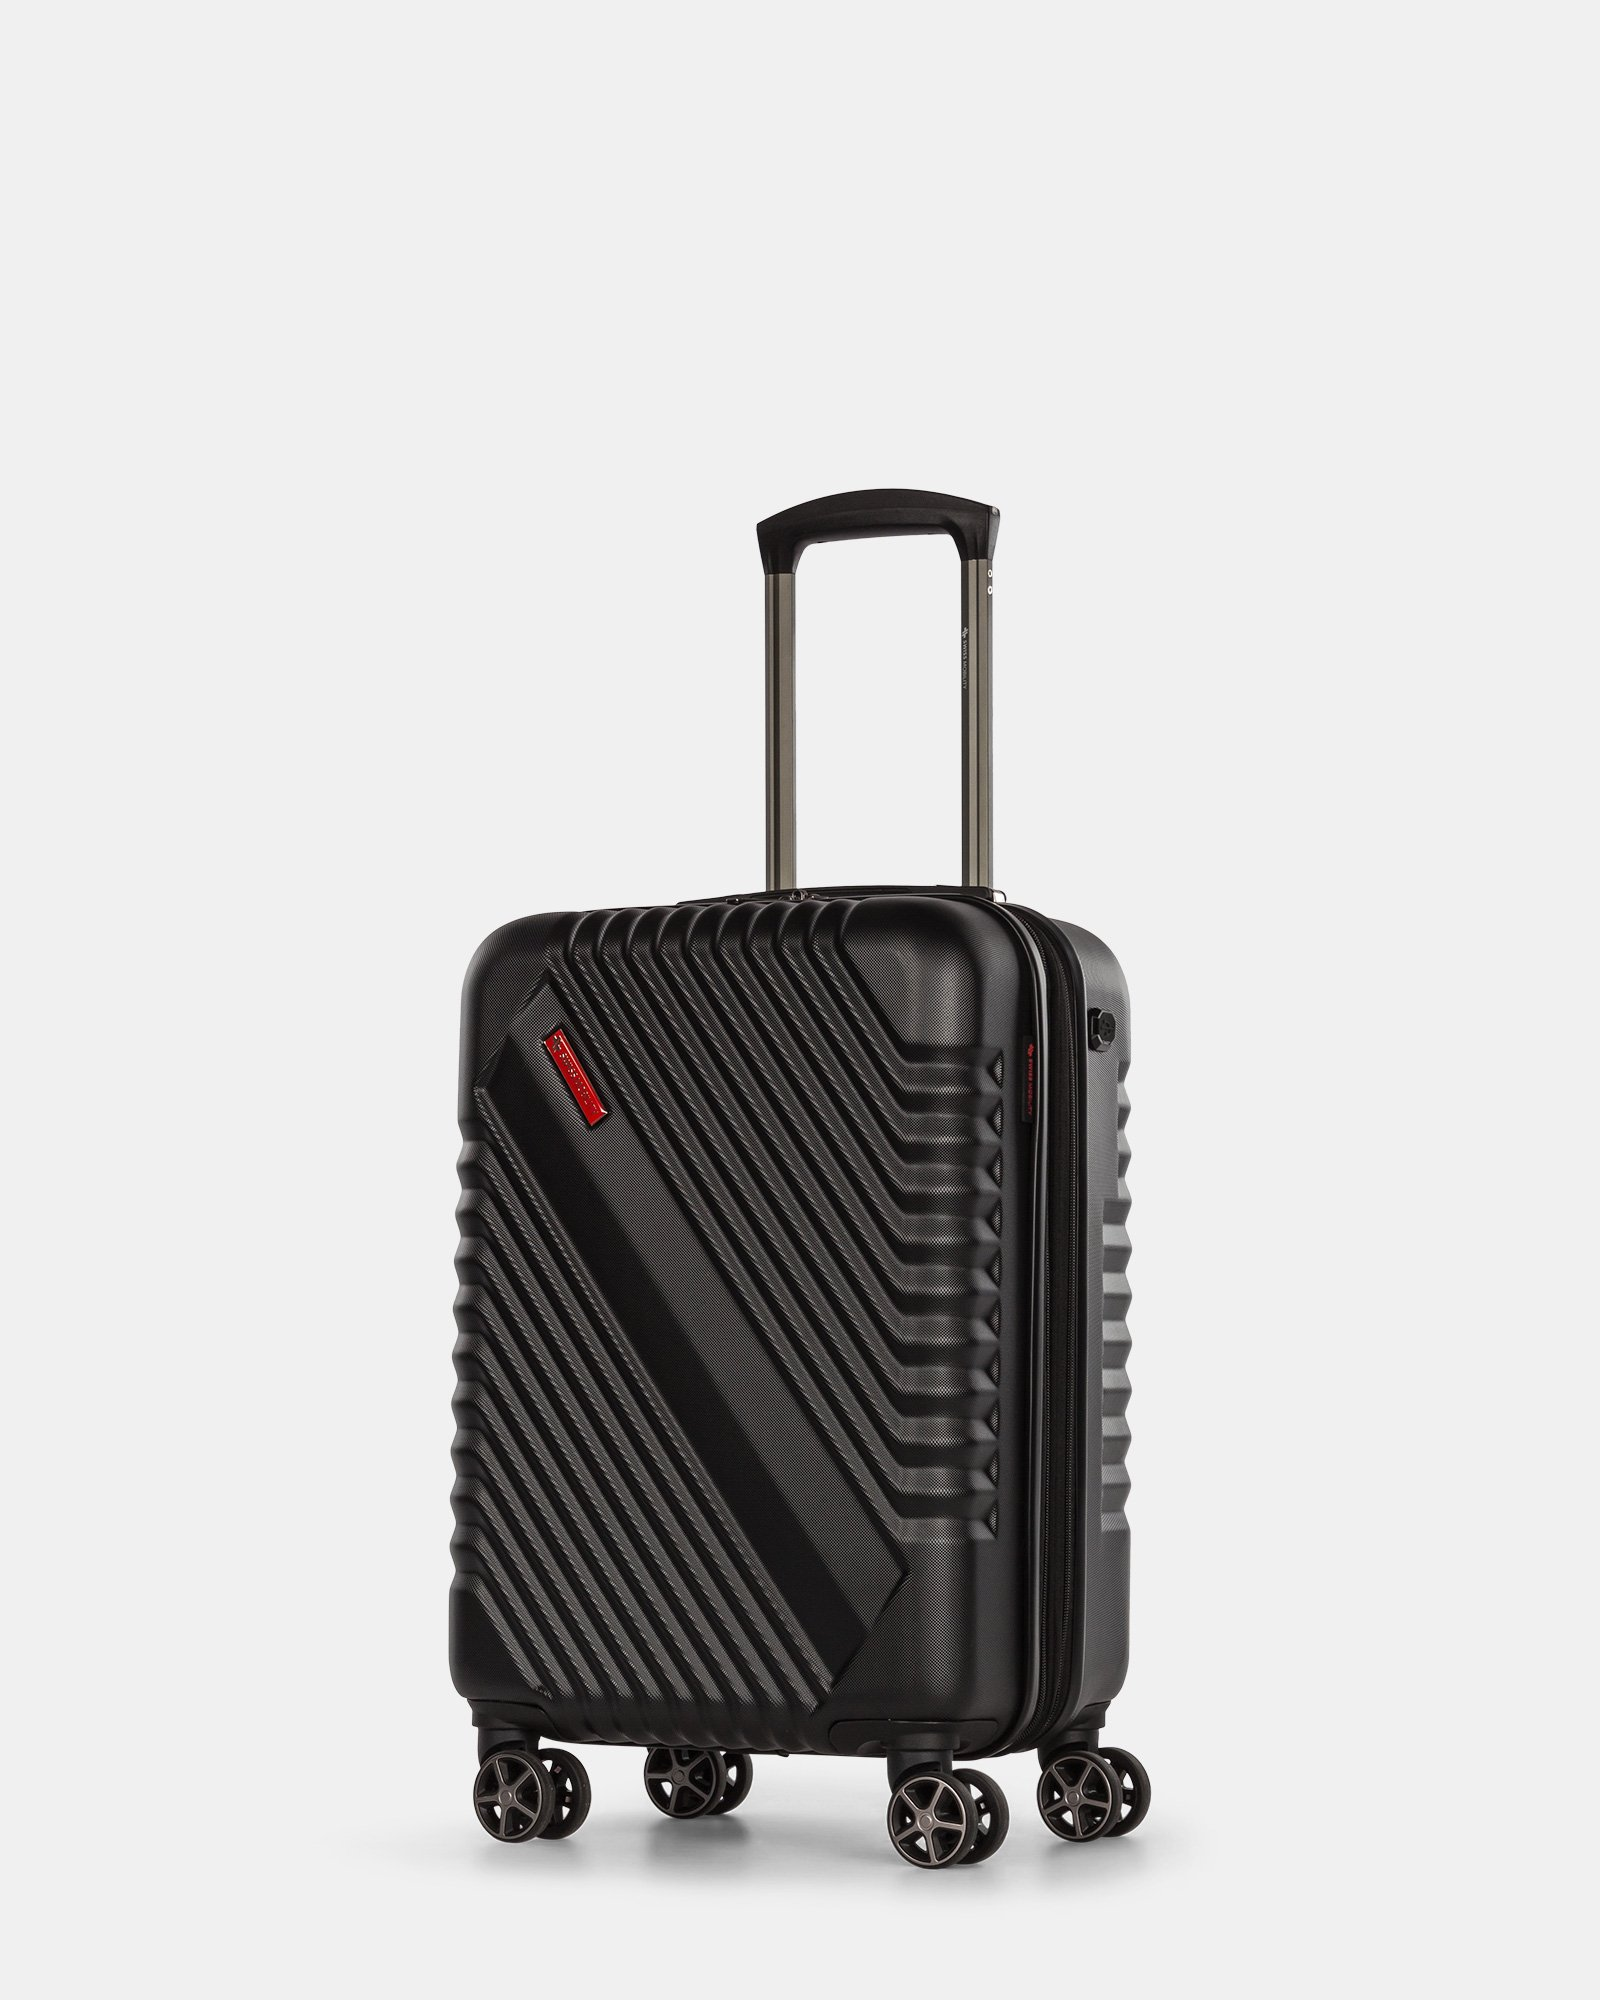 Cirrus – Hardside Carry-On Luggage - Swiss Mobility - Zoom